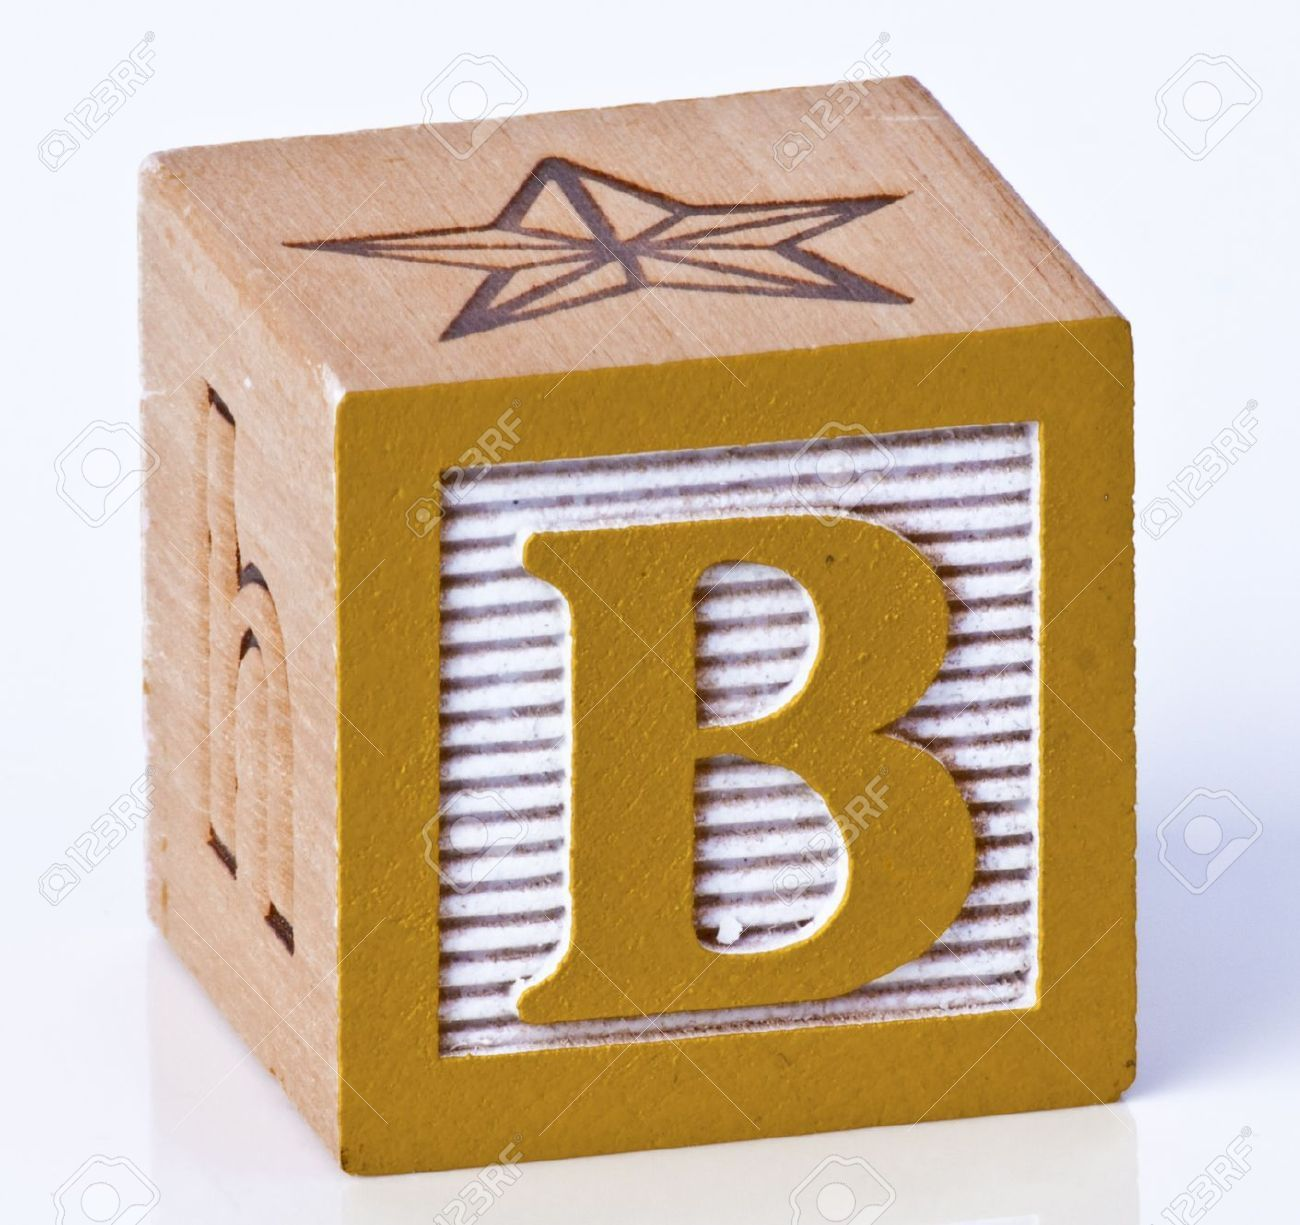 Wood Block Letters ~ Letter wood block used as end table living in a